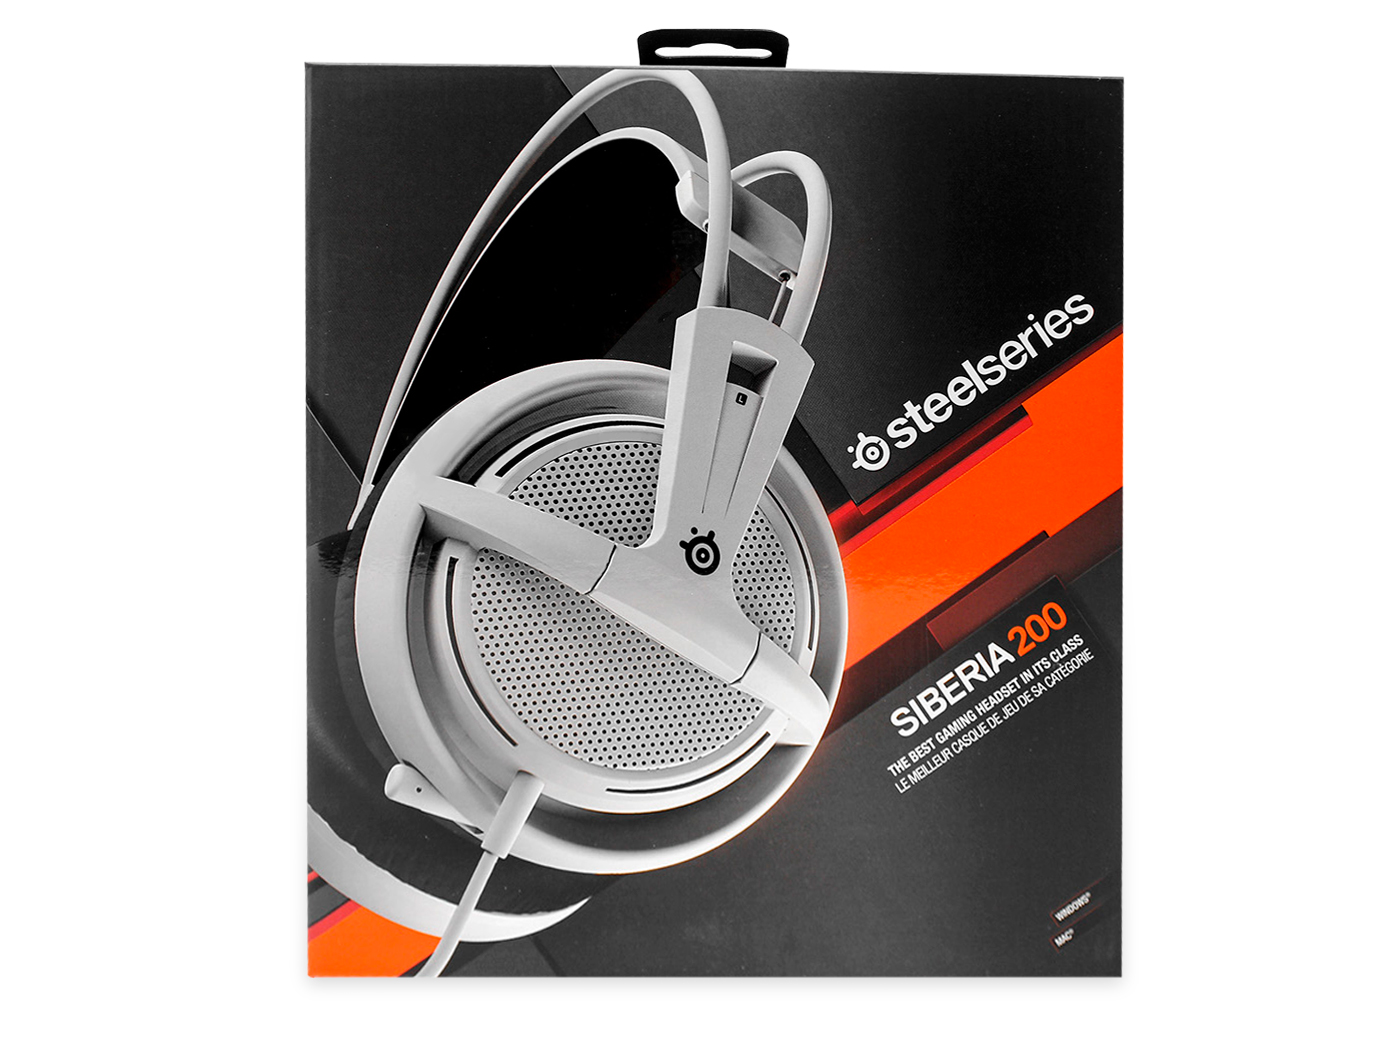 steelseries-siberia-200-box-front.jpg